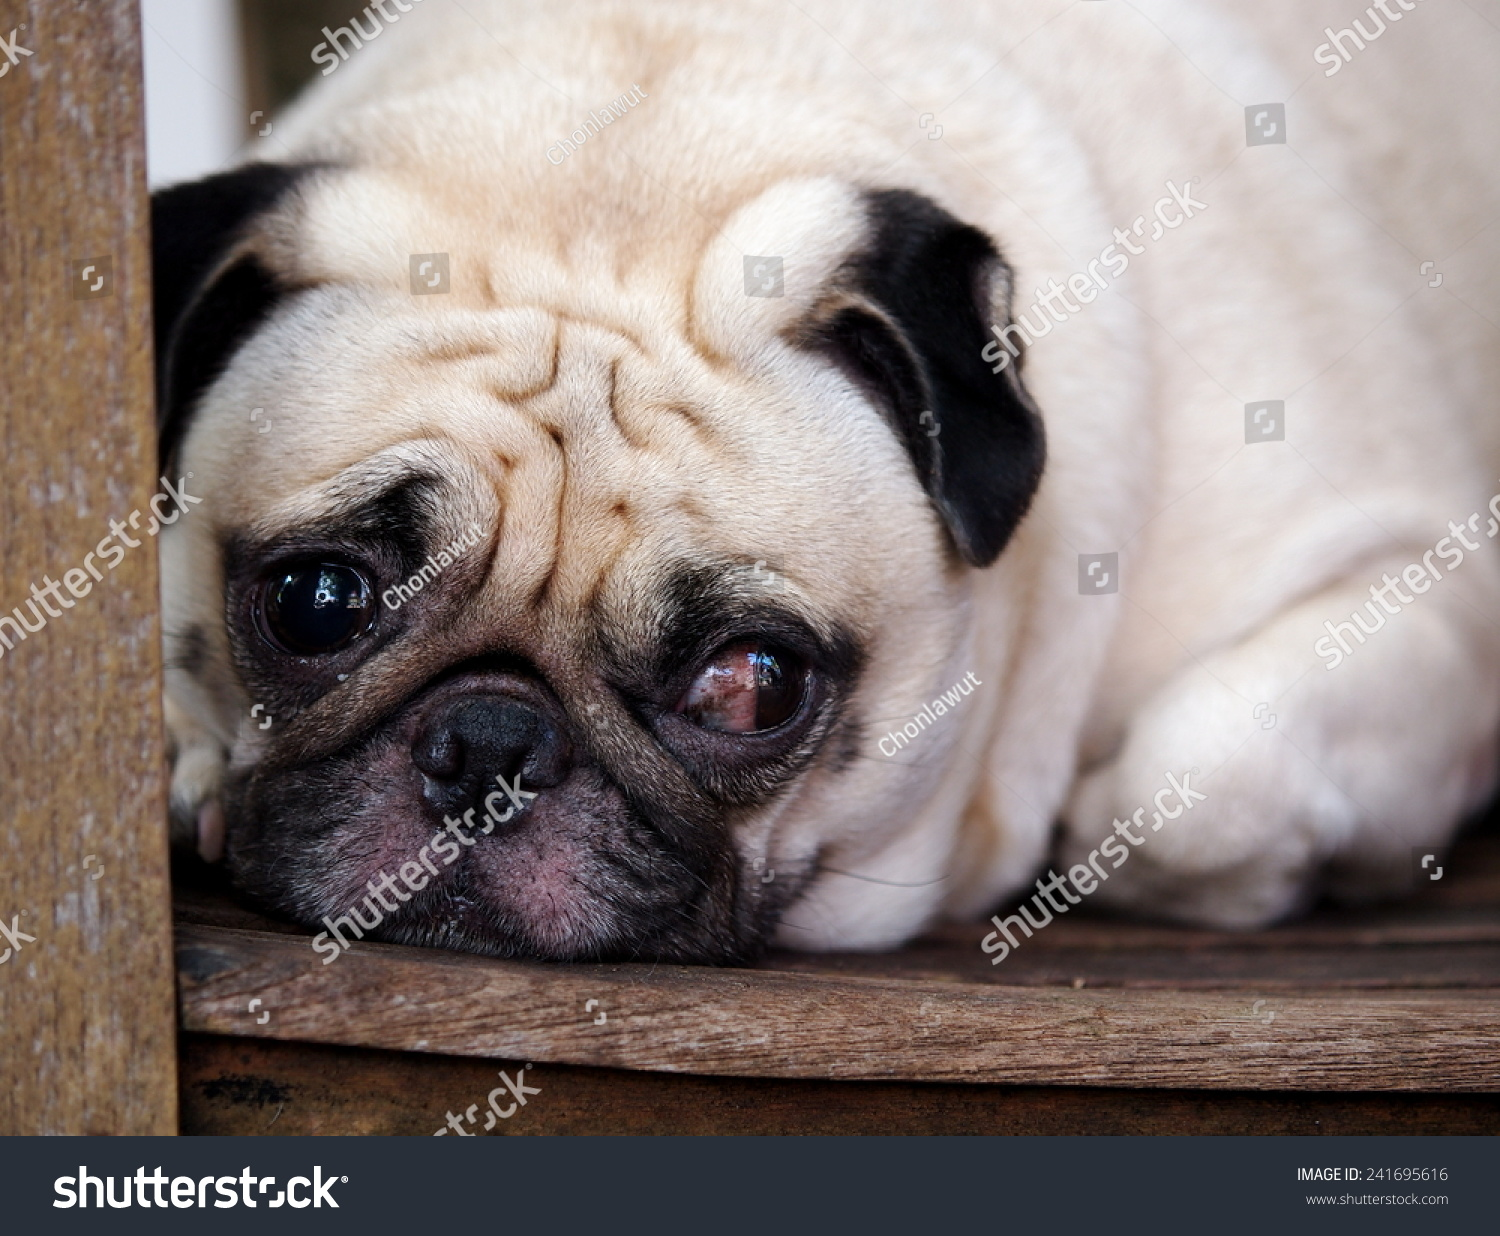 Close up portraits of a lovely funny white cute fat good pug dog close up laying on a wooden chair making sad face outdoor under natural sunlight on a sunny